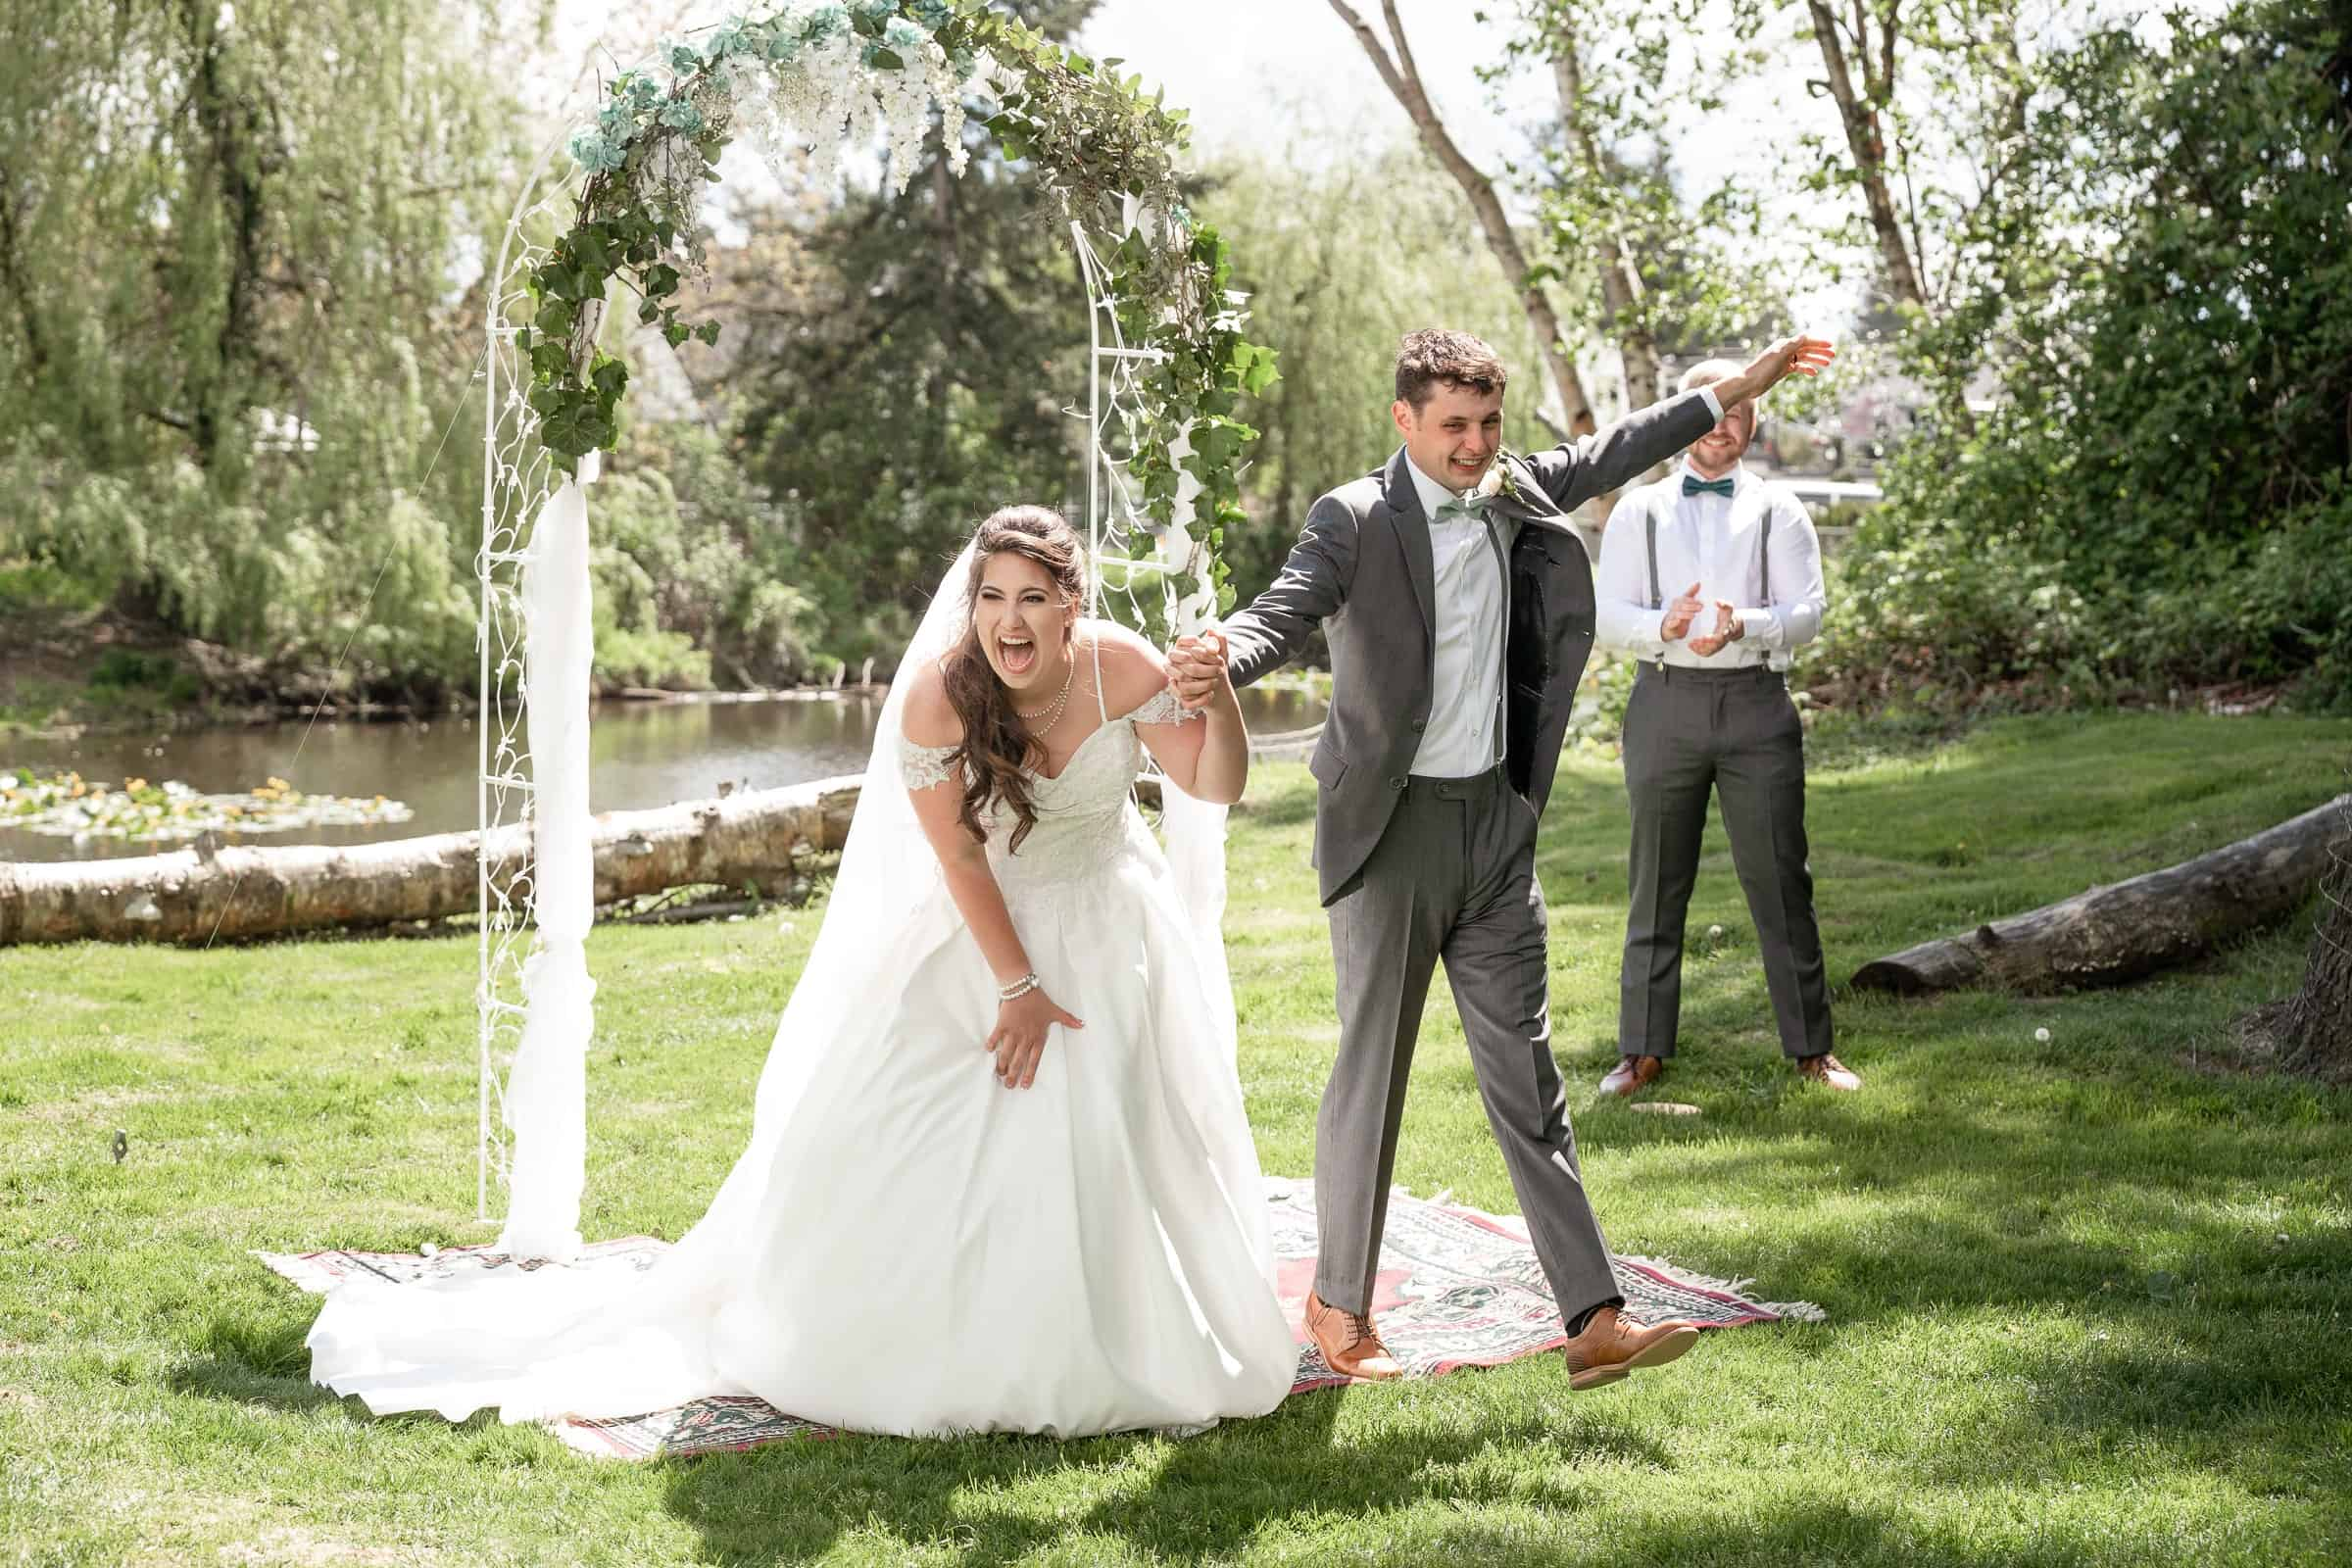 bride and groom celebrating being made man and wife